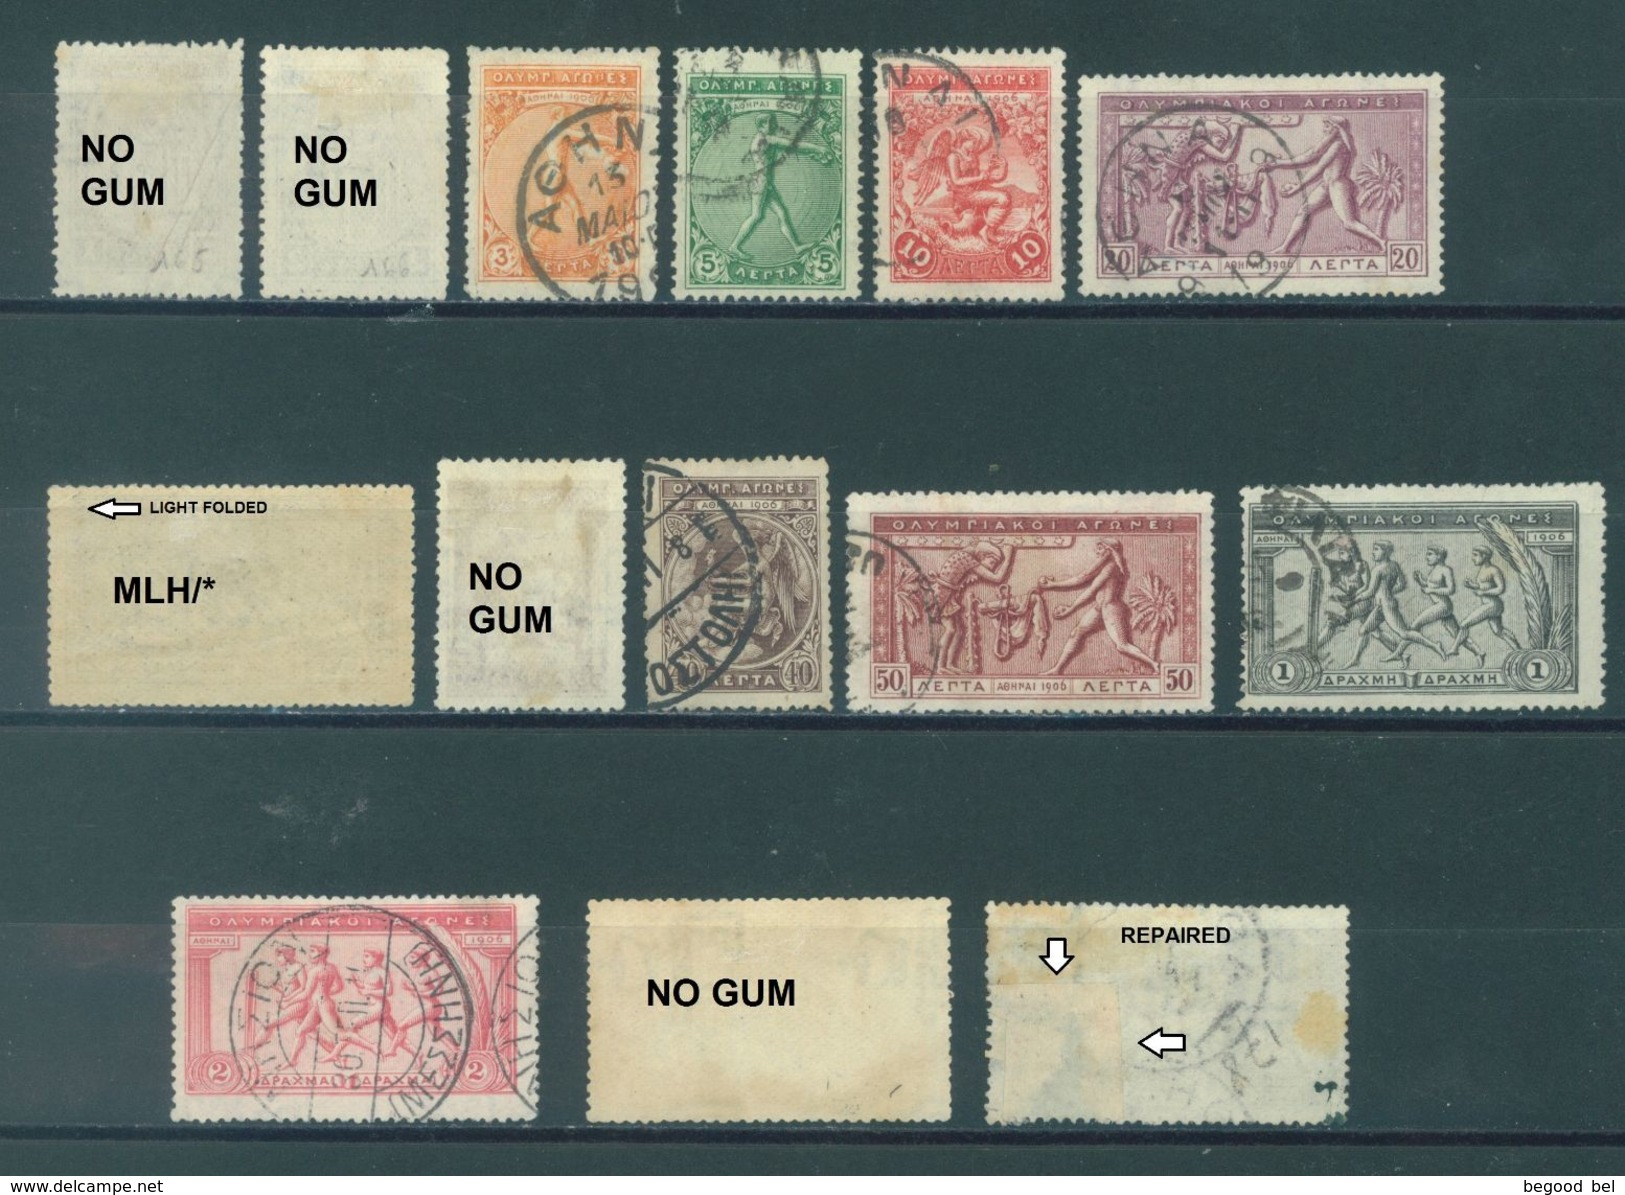 GREECE - USED/OBLIT. - 1906 - Mi 144-157 Yv 165-178 - Lot 16098 - SEE SCANS WITH DEFECTUOSITIES - LOW PRICE !!! - 1906 Deuxième Jeux Olympiques